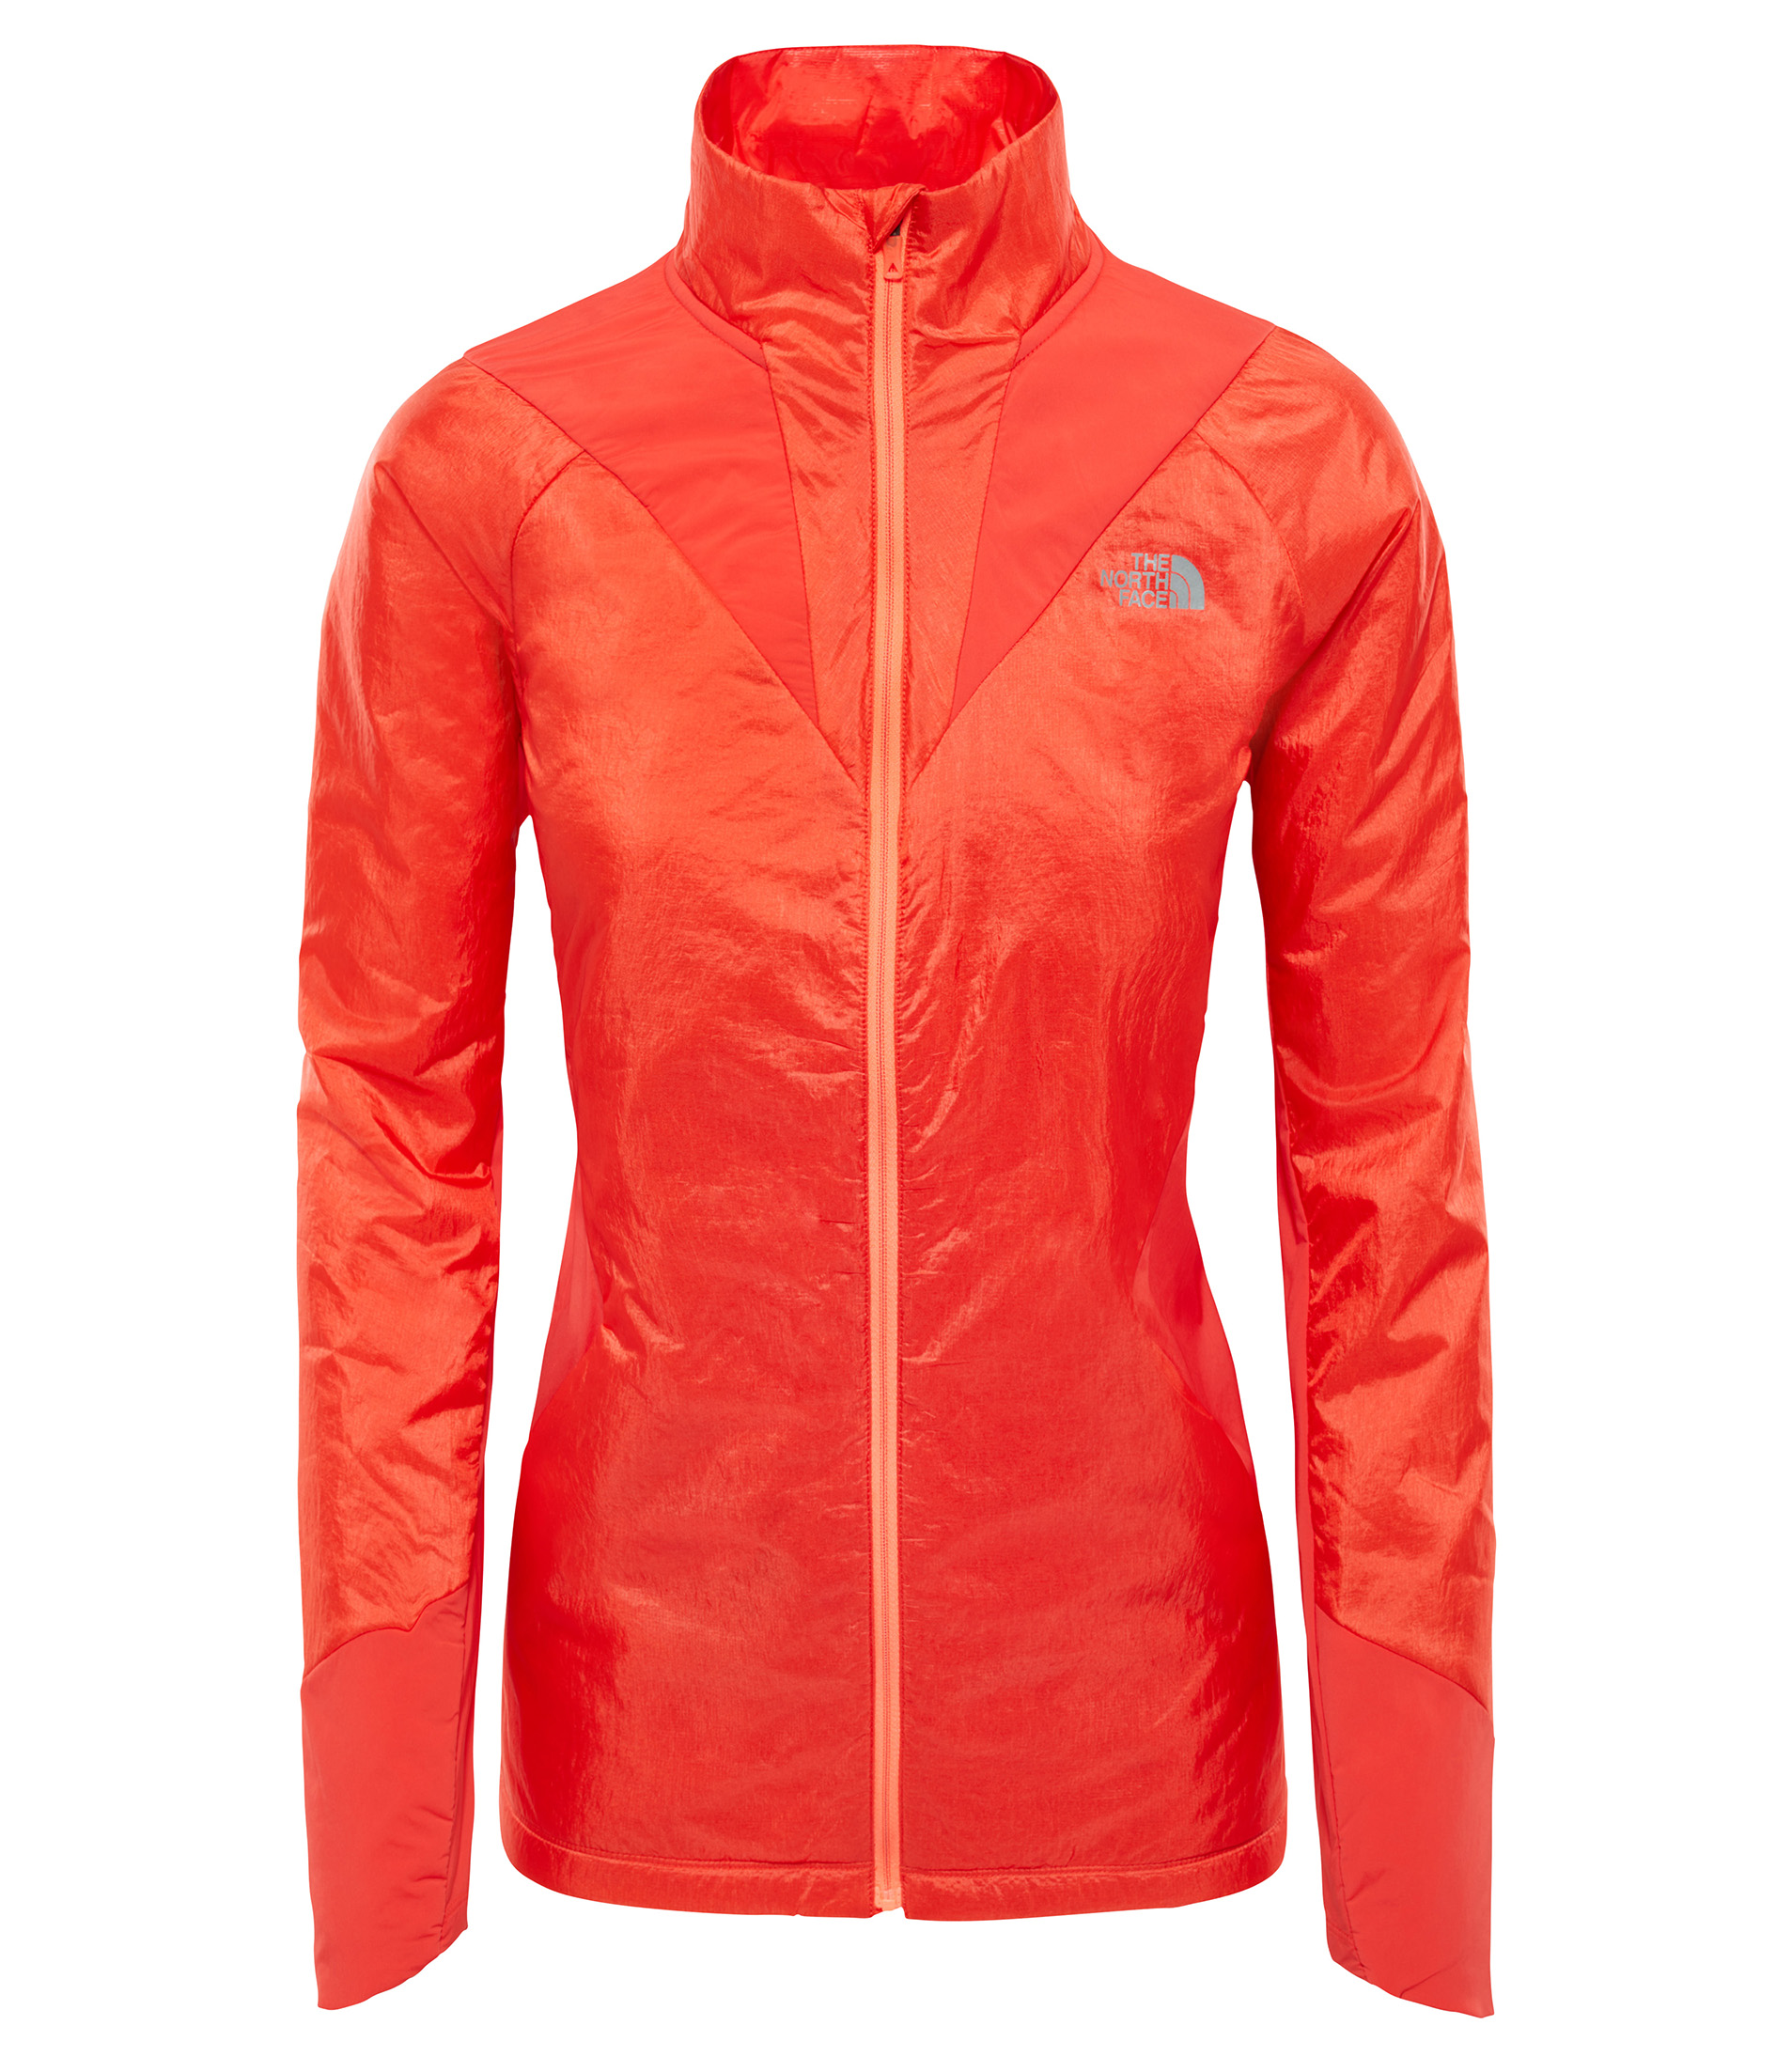 THE NORTH FACE W FLIGHT VENTRIX™ JACKET, JUICY RED velikost: M